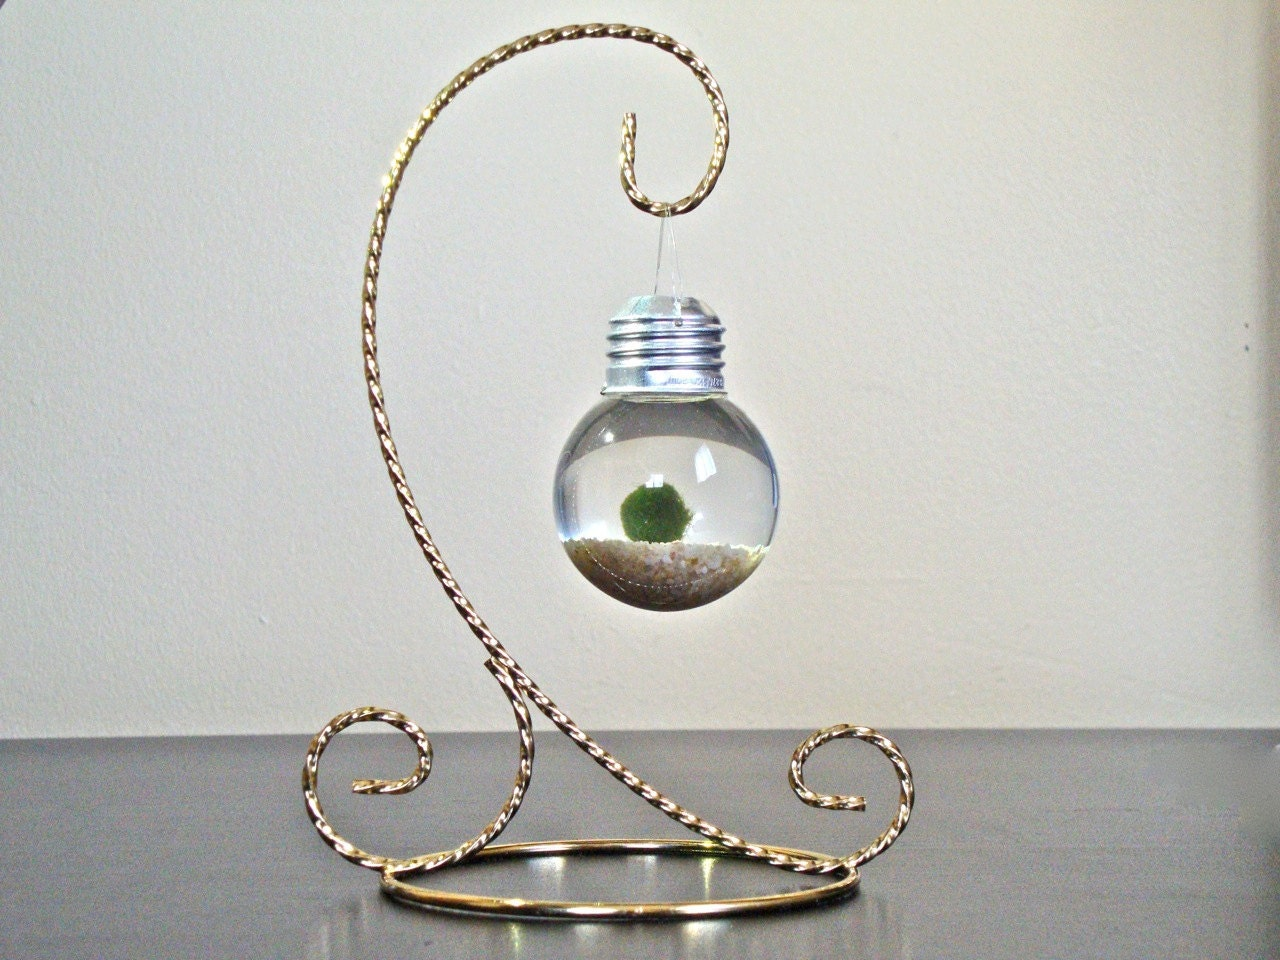 Popular items for aquarium ornament on Etsy